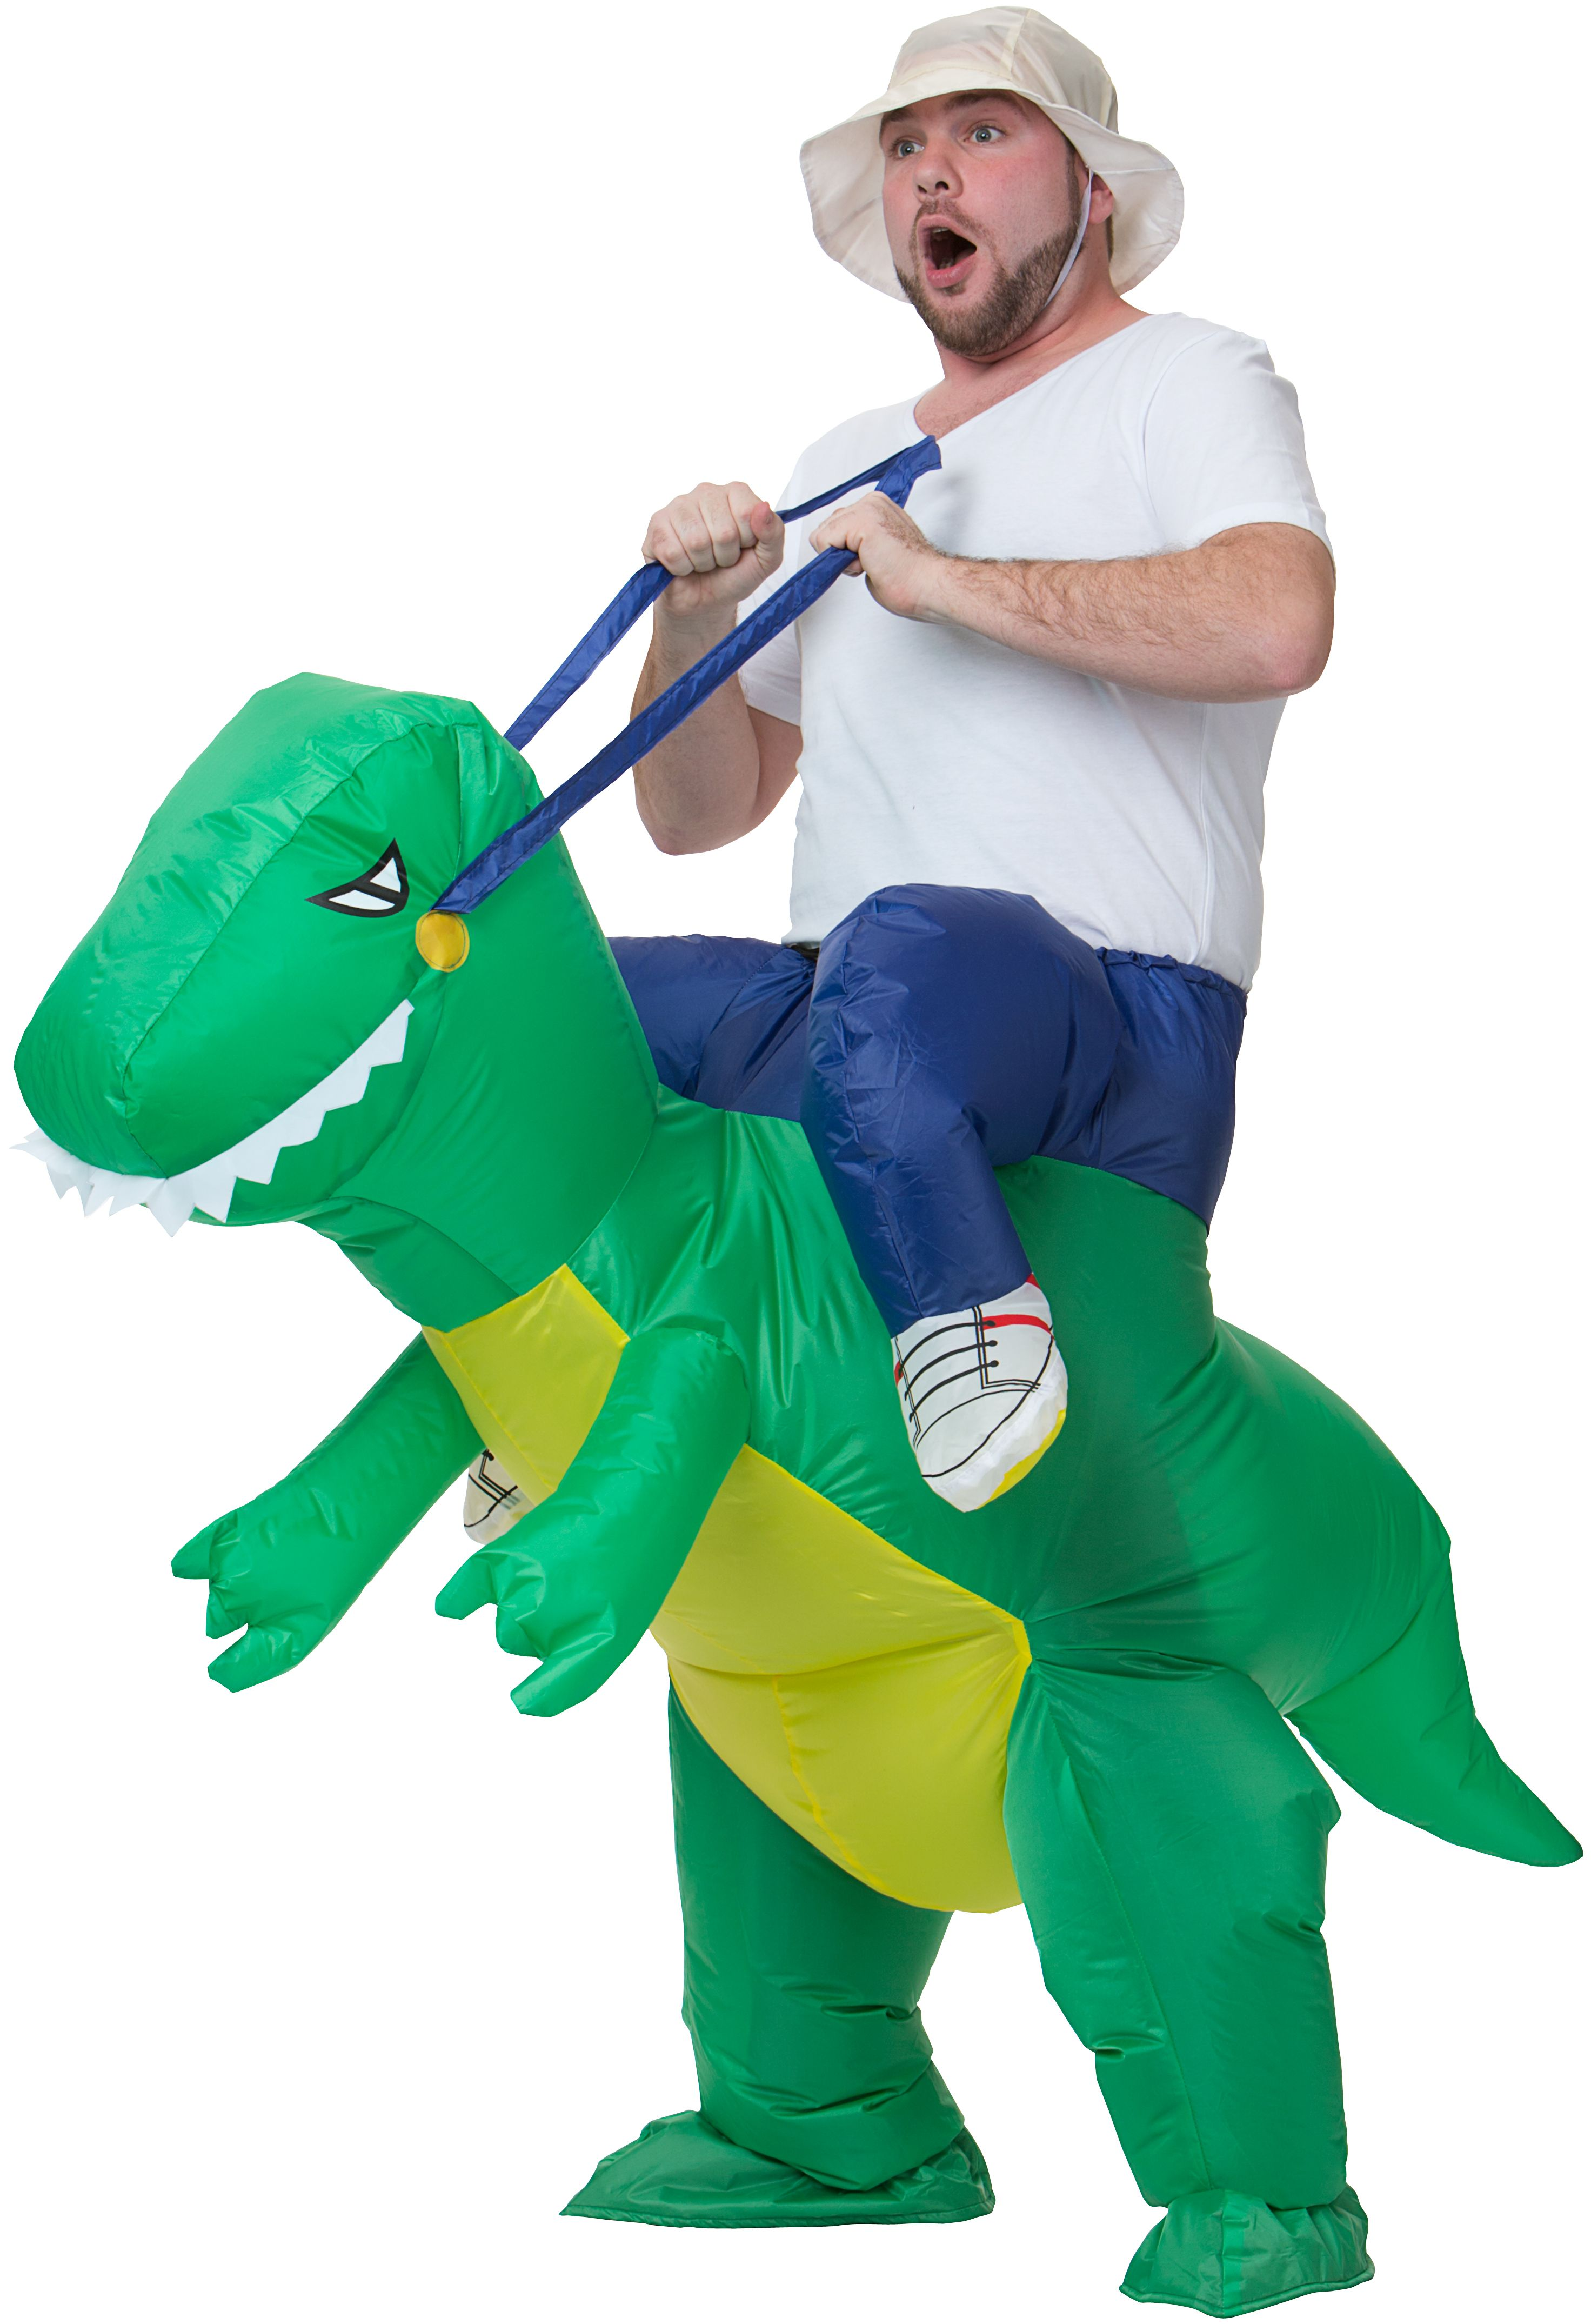 2b9f3c90668f $35 for this blow up dinosaur costume. Grab it in stores now ...